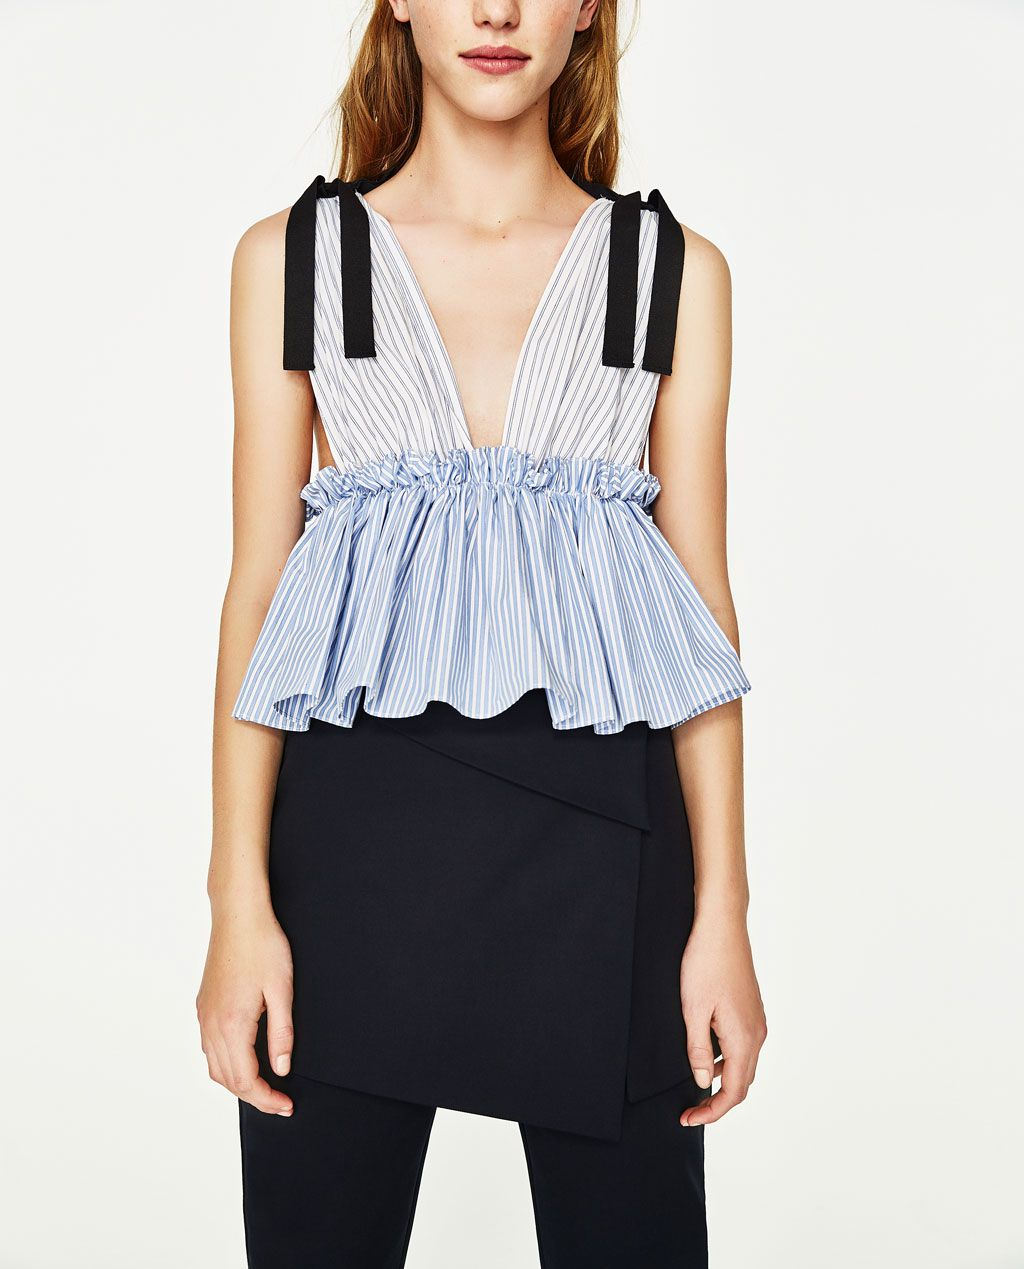 CONTRAST STRIPED TOP - NEW IN